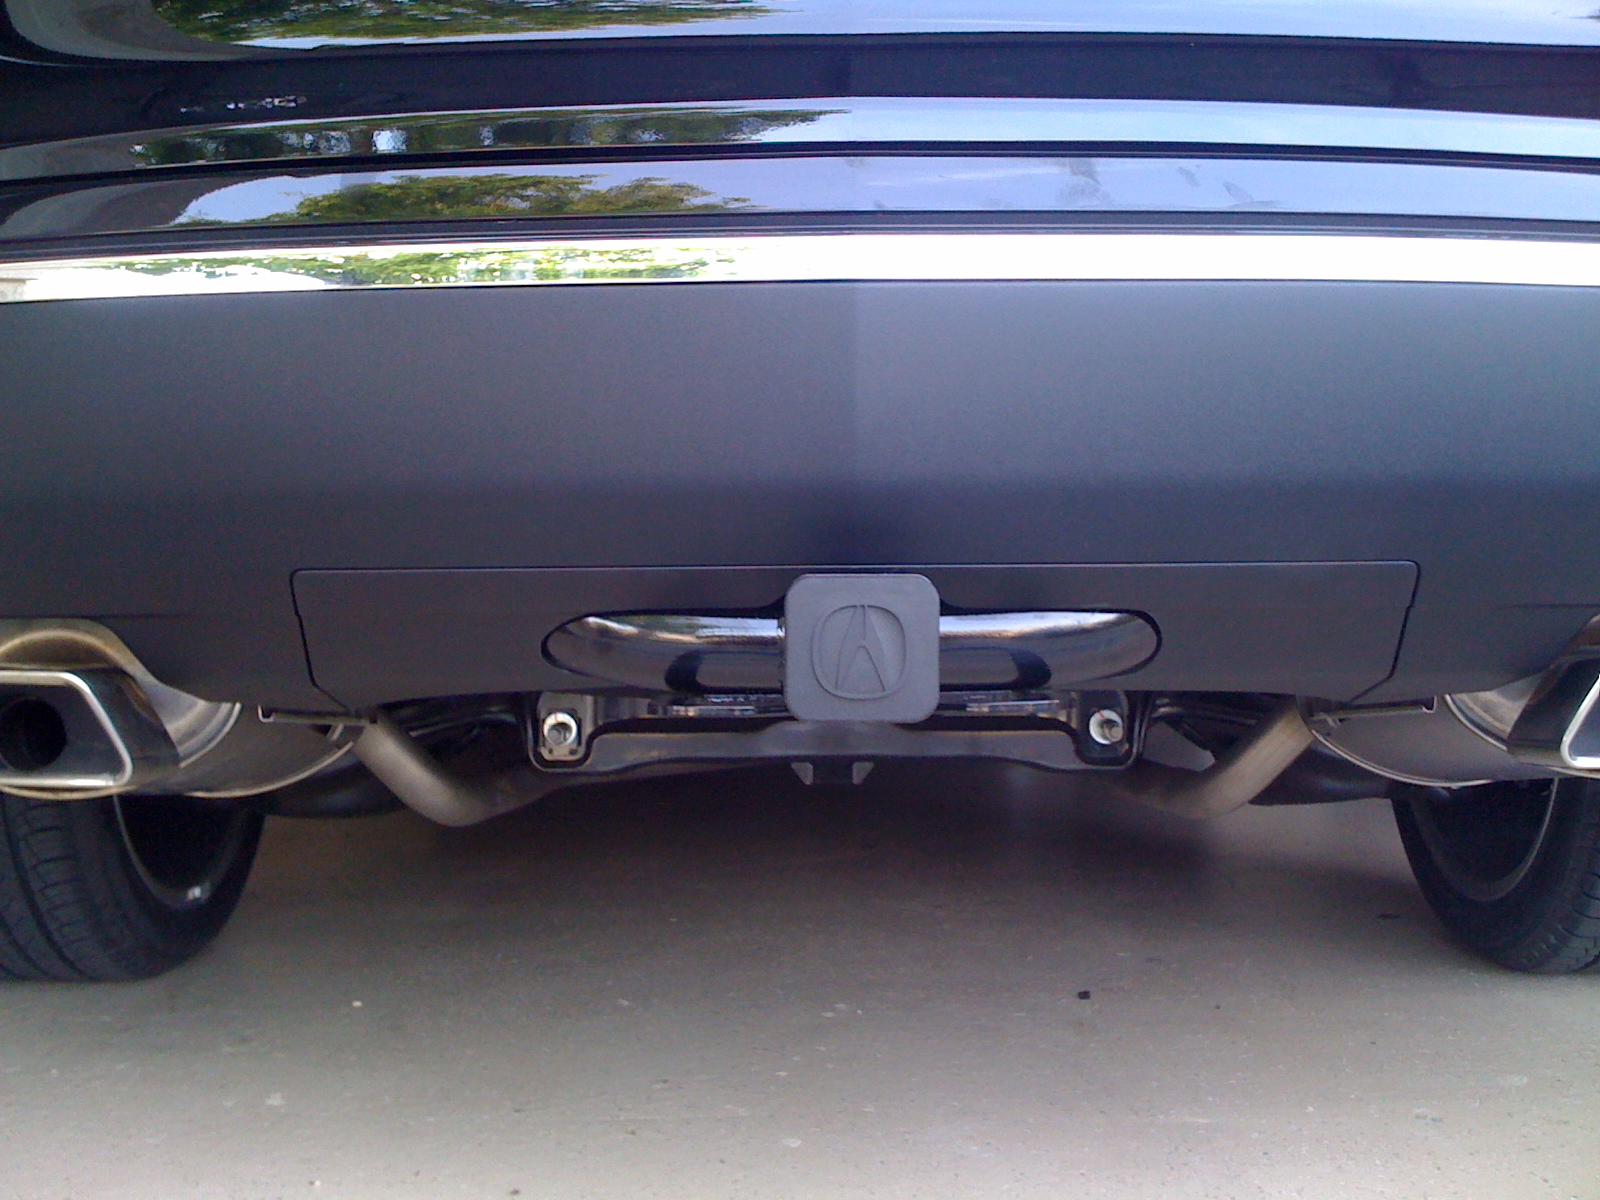 hight resolution of  acura mdx 41413d1276050619 new aftermarket hitch installed w pics img 0225 new aftermarket hitch installed w pics page 15